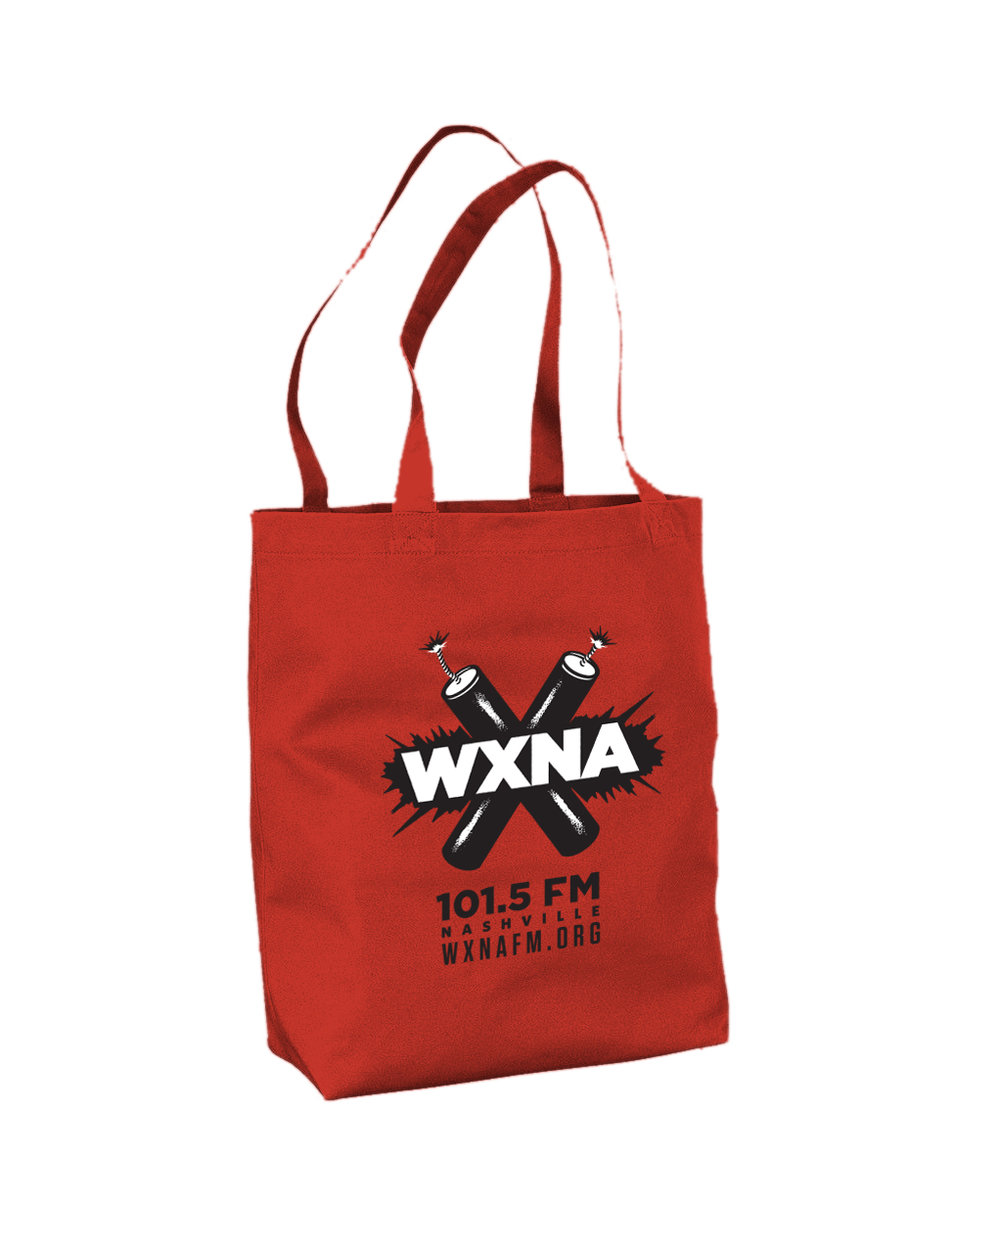 Donate $101.5 or more and we'll send you a fabulous red WXNA tote bag. Divide your donation into 12 monthly installments, and that's only $8.46 per month to support your favorite freeform community radio station! - Plus you'll receive our new beverage huggie and awesome limited-edition sticker!